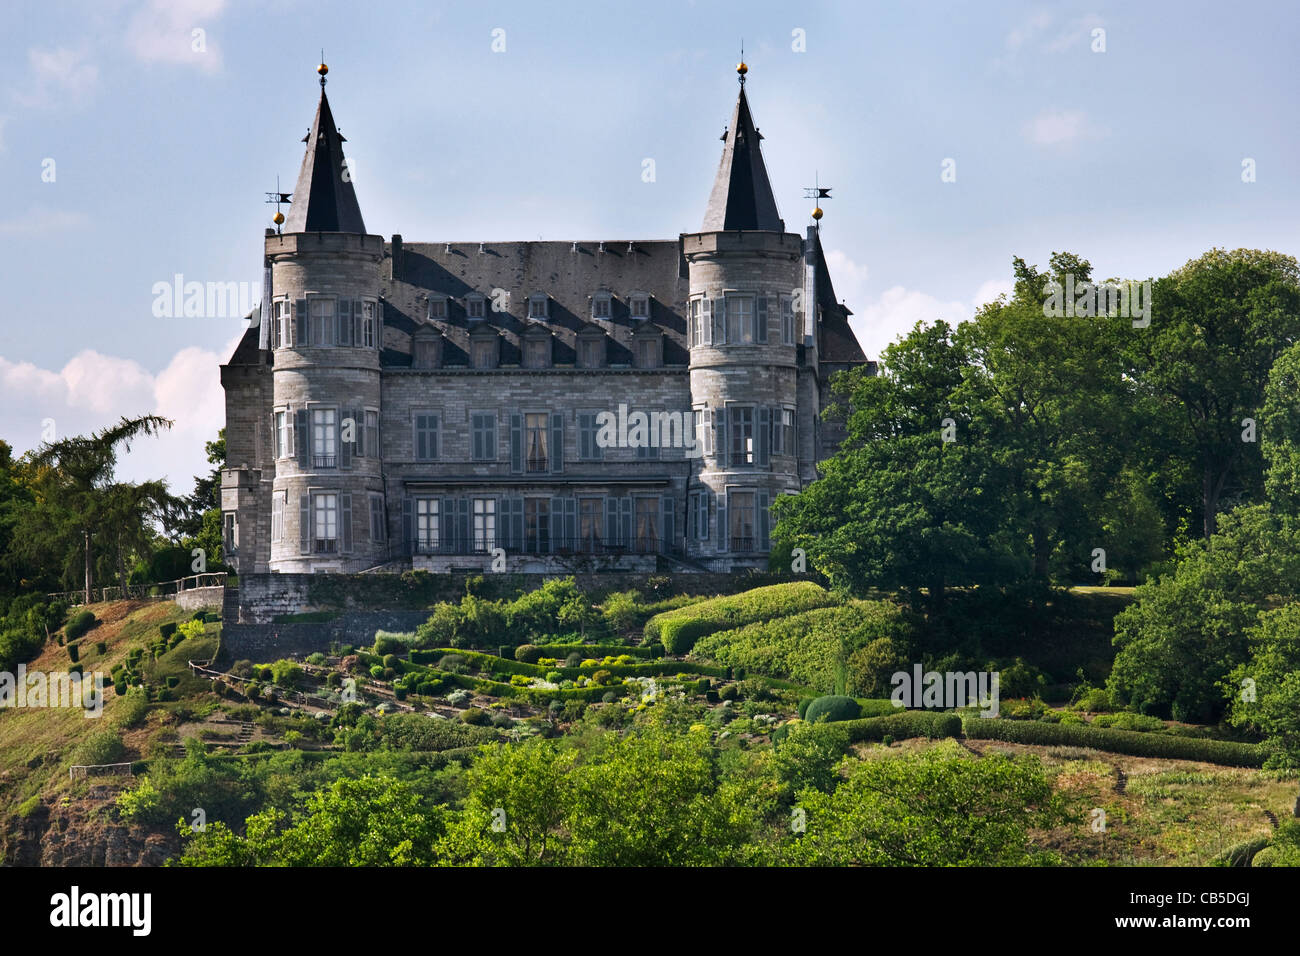 Royal Castle of Ciergnon, residence and summer retreat of the Belgian Royal Family, Ardennes, Belgium - Stock Image